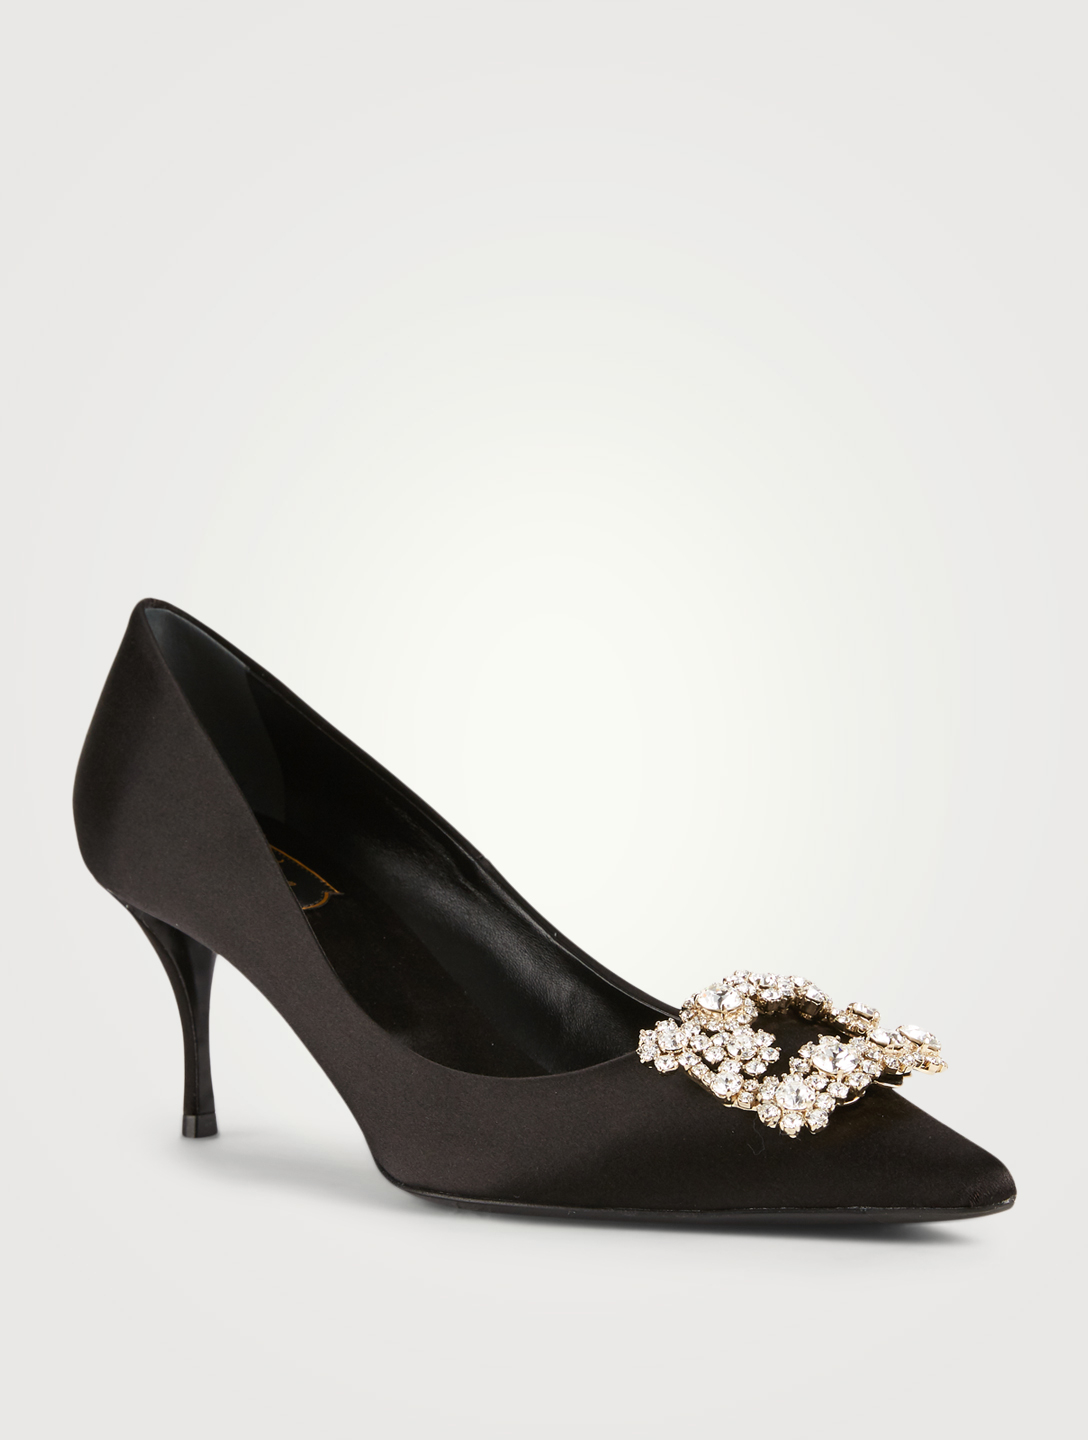 ROGER VIVIER Flower Strass Silk Satin Pumps Women's Black